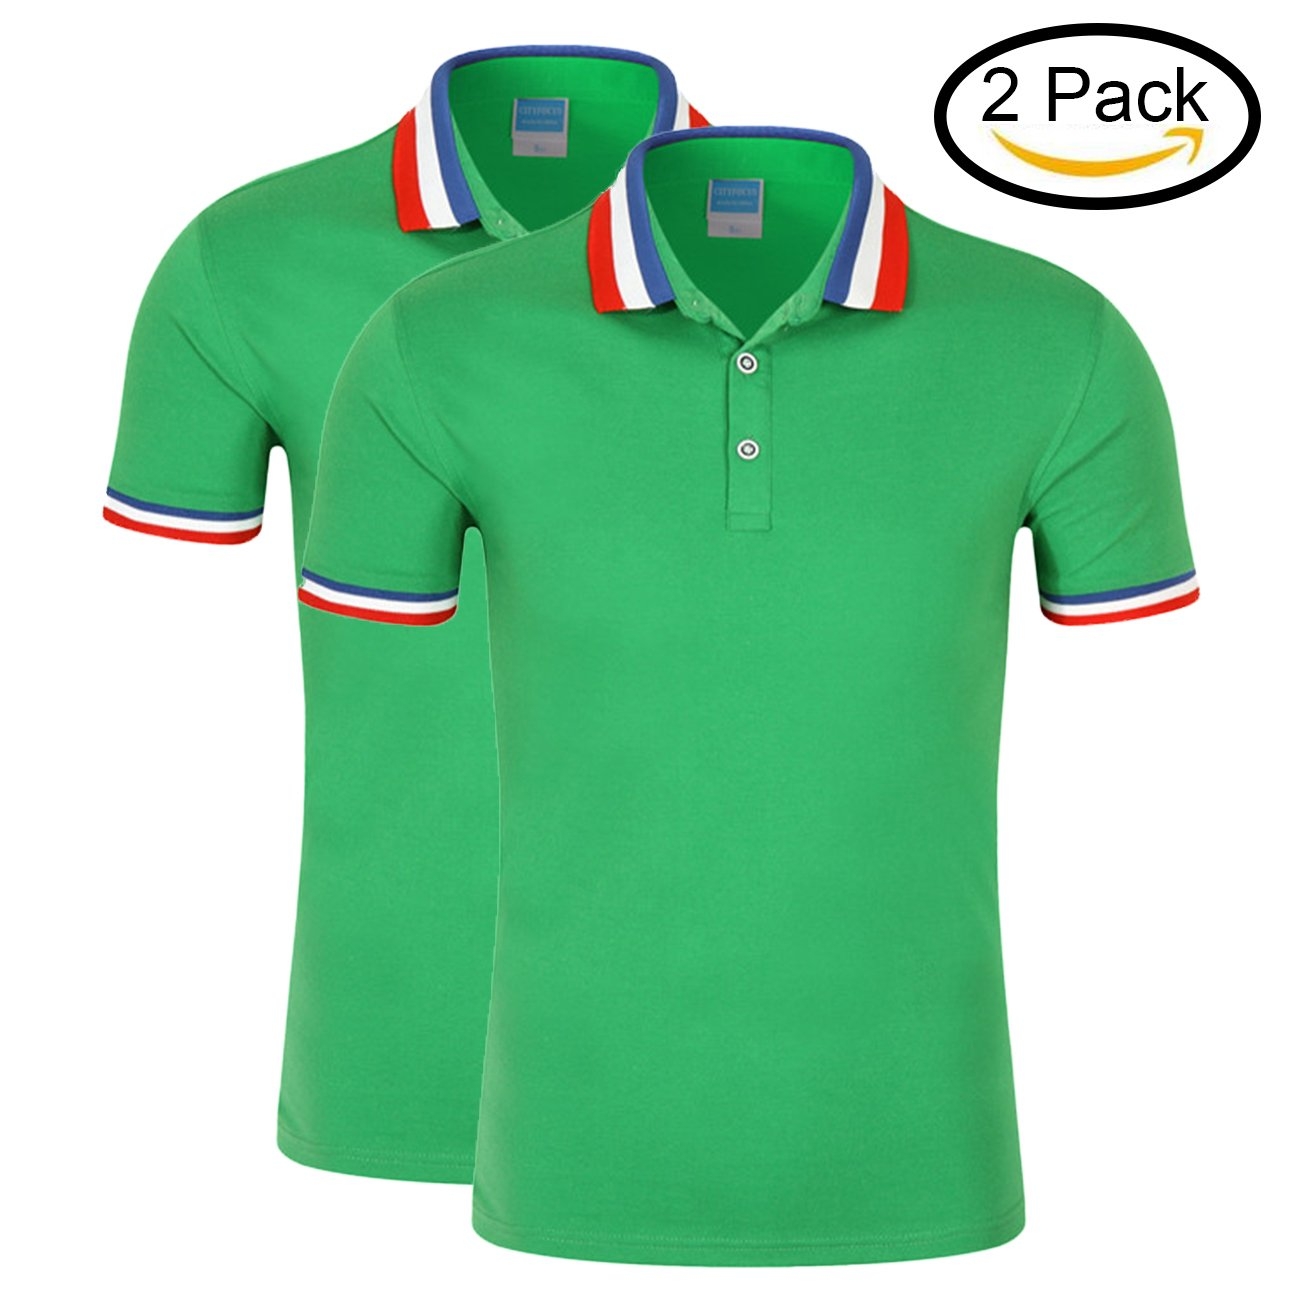 Geezan Polo T Shirts Women 2 Pack Ladies Polo Shirts Loose Fit